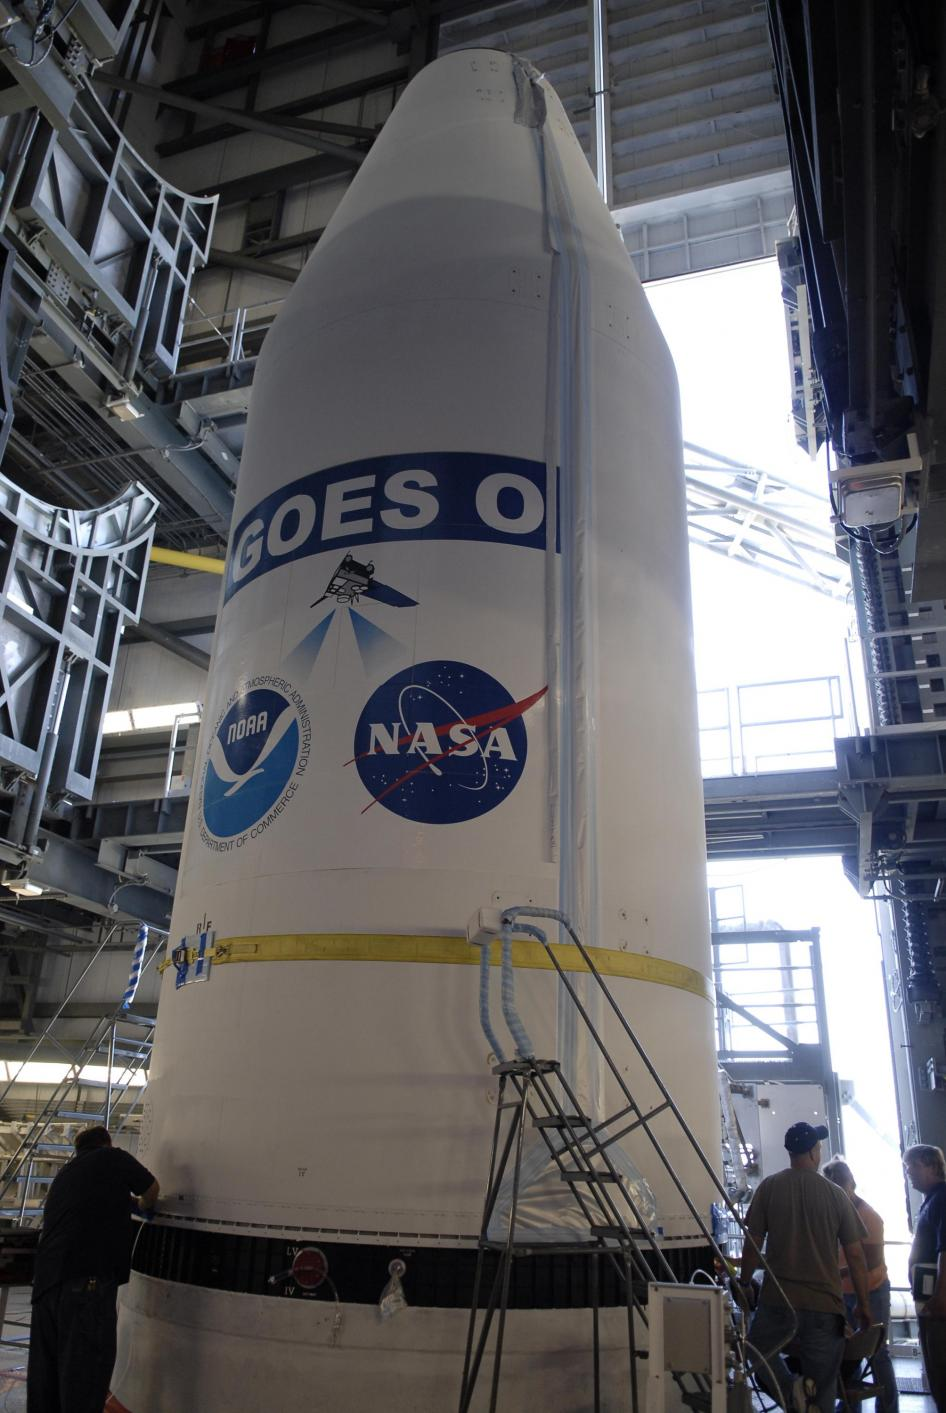 GOES-O in Nose Cone